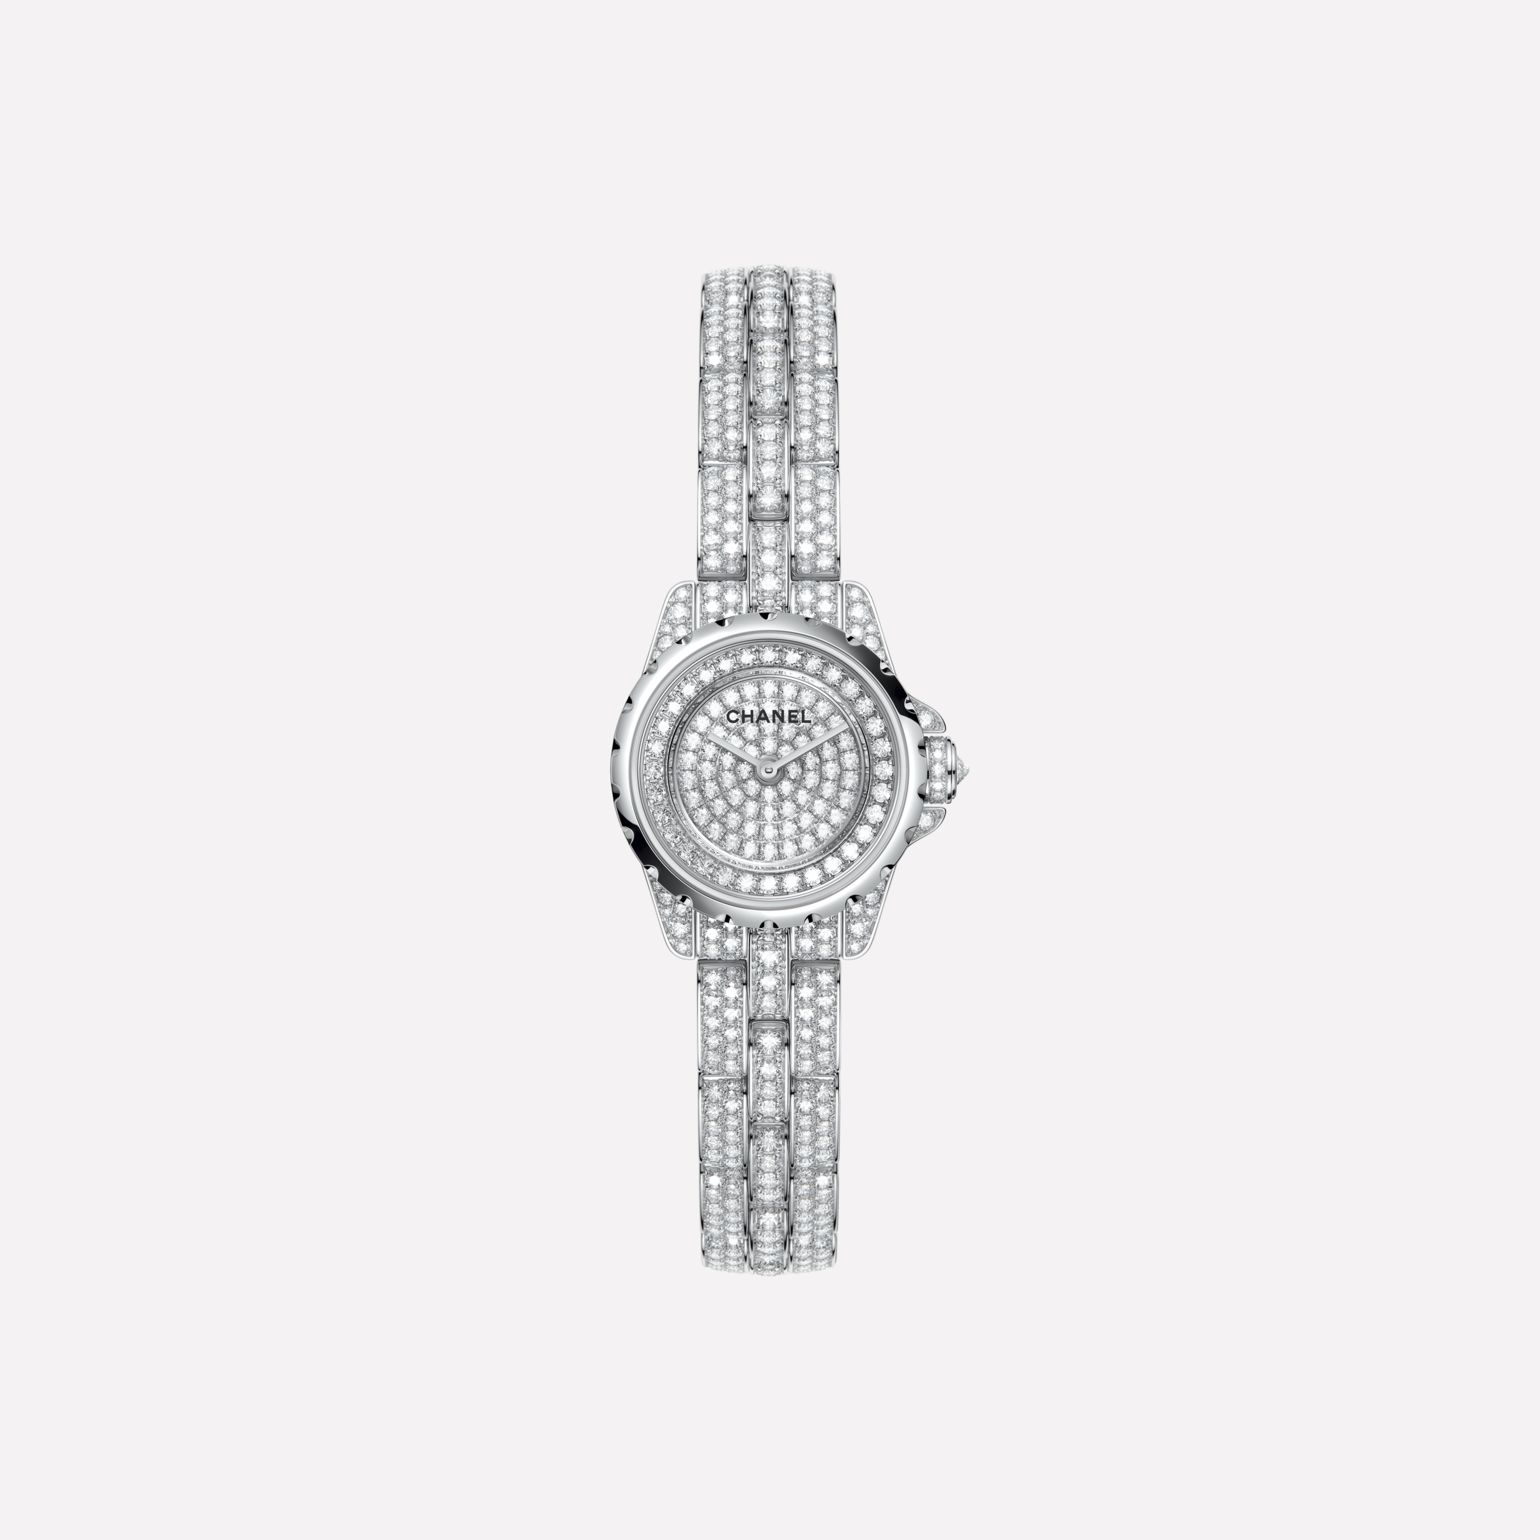 J12·XS High Jewellery Watch White gold, case, dial, bezel and bracelet set with brilliant-cut diamonds